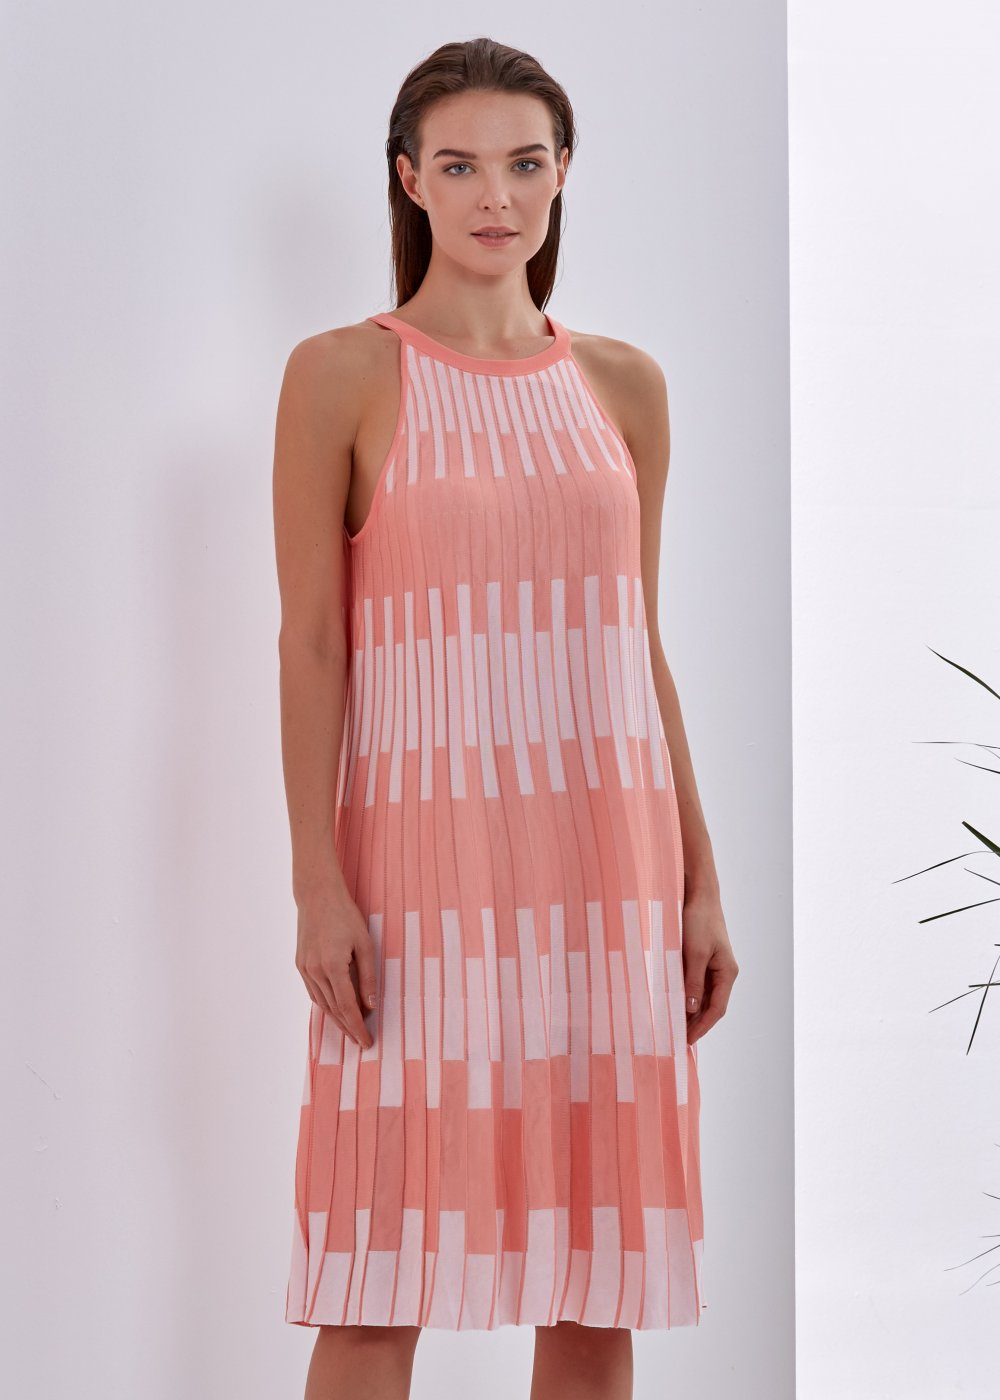 PATTERNED SALMON COLOR KNITTED DRESS